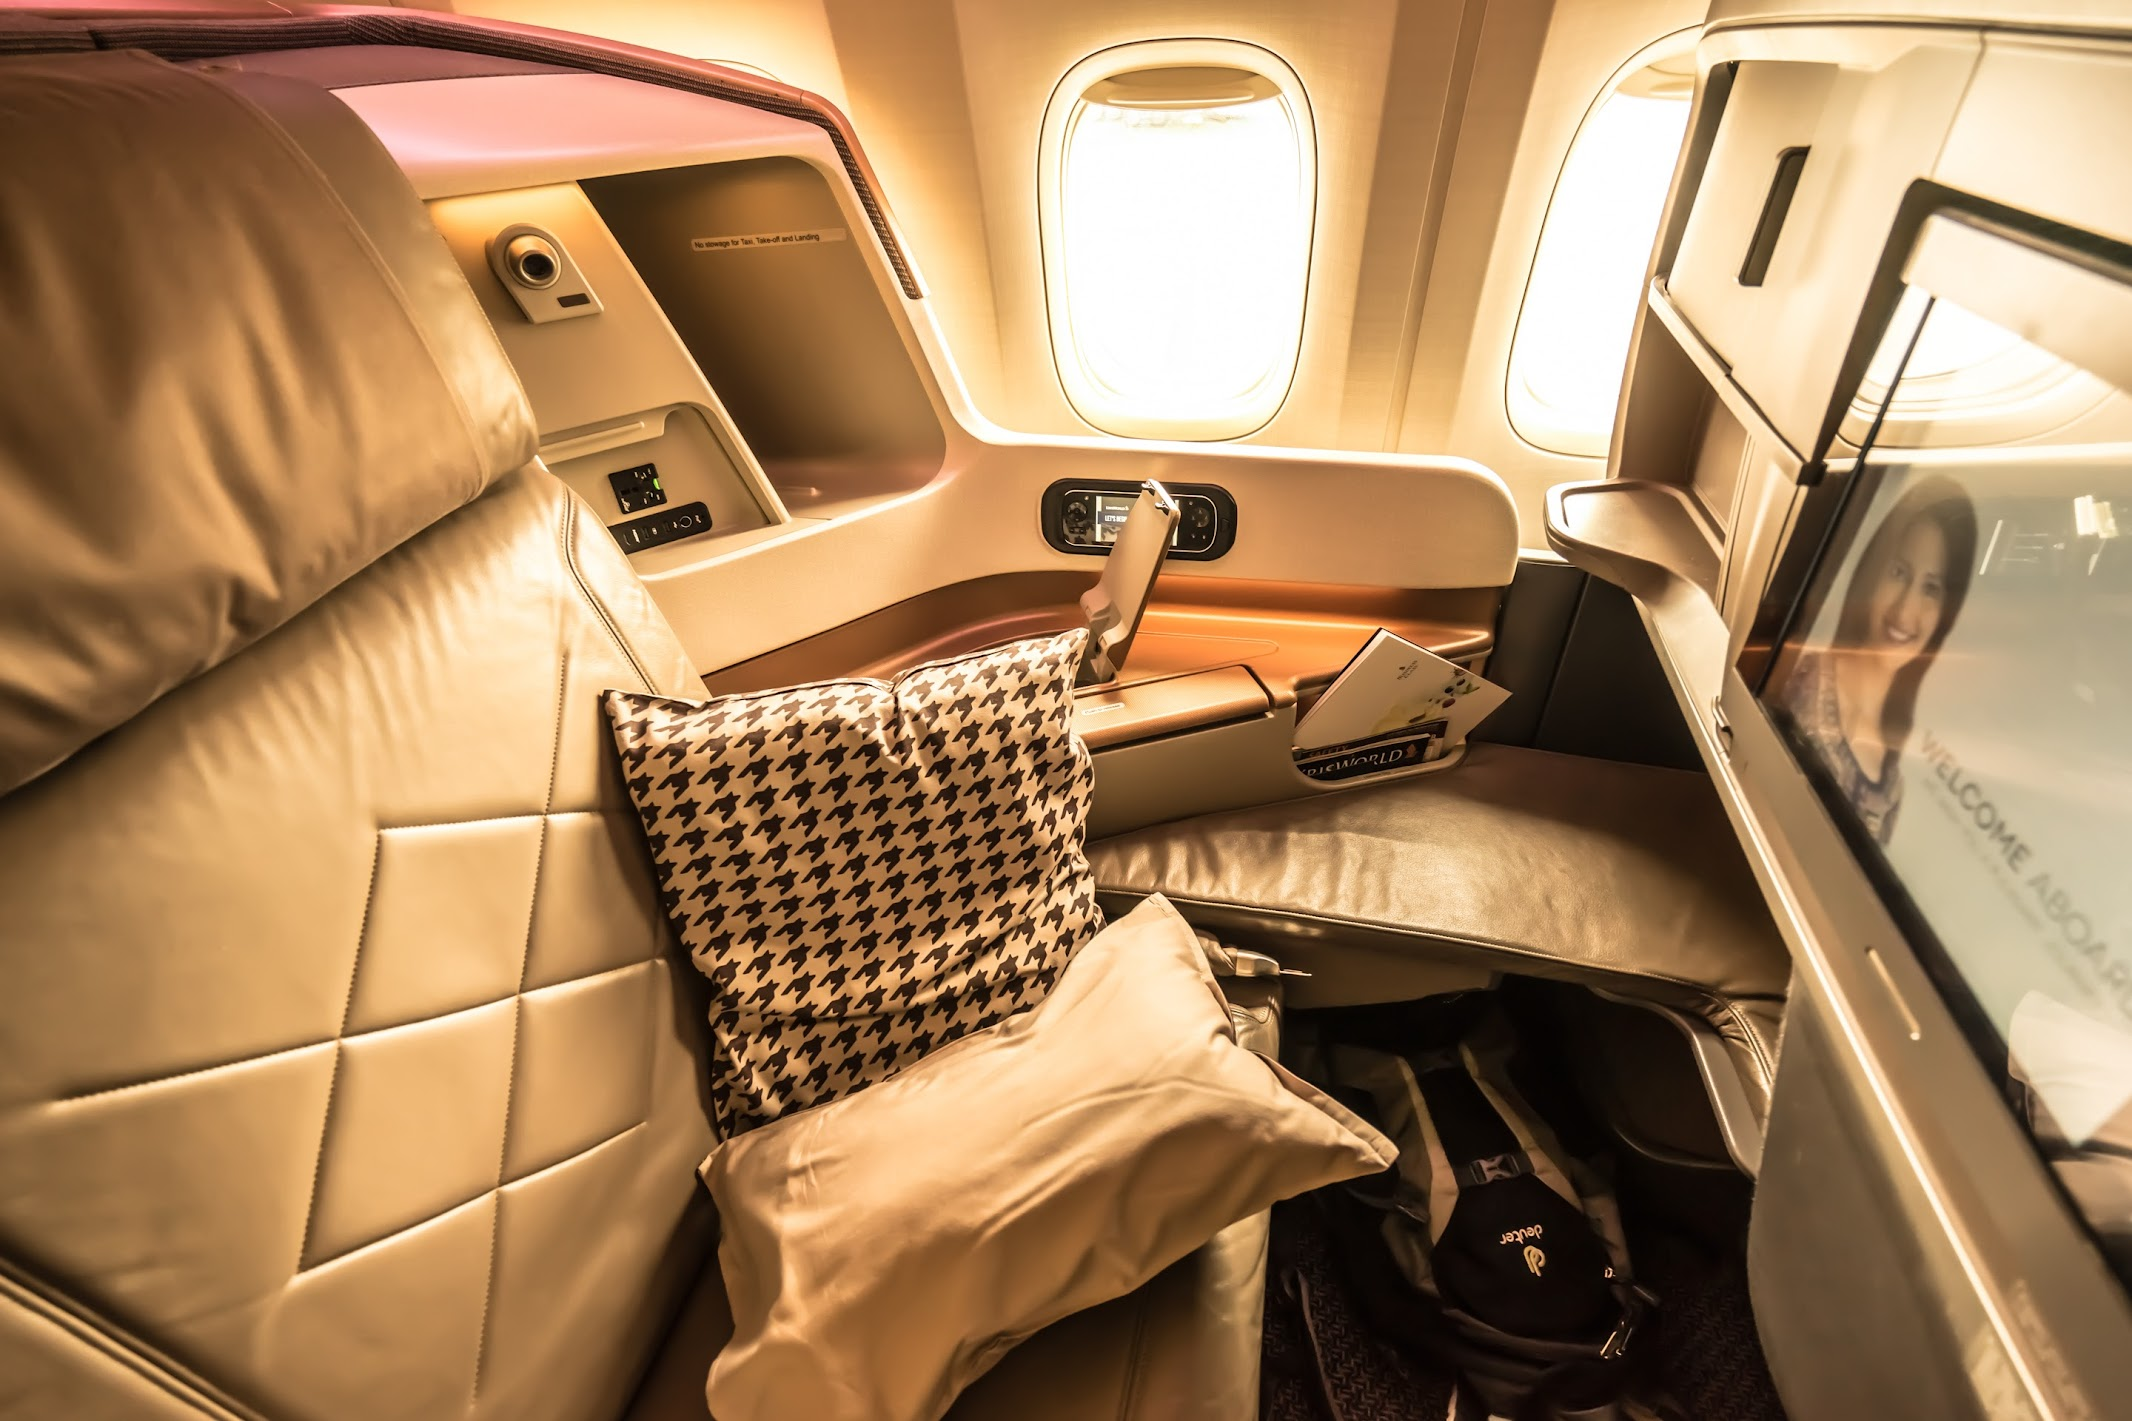 Singapore Airlines 777-300ER business class1